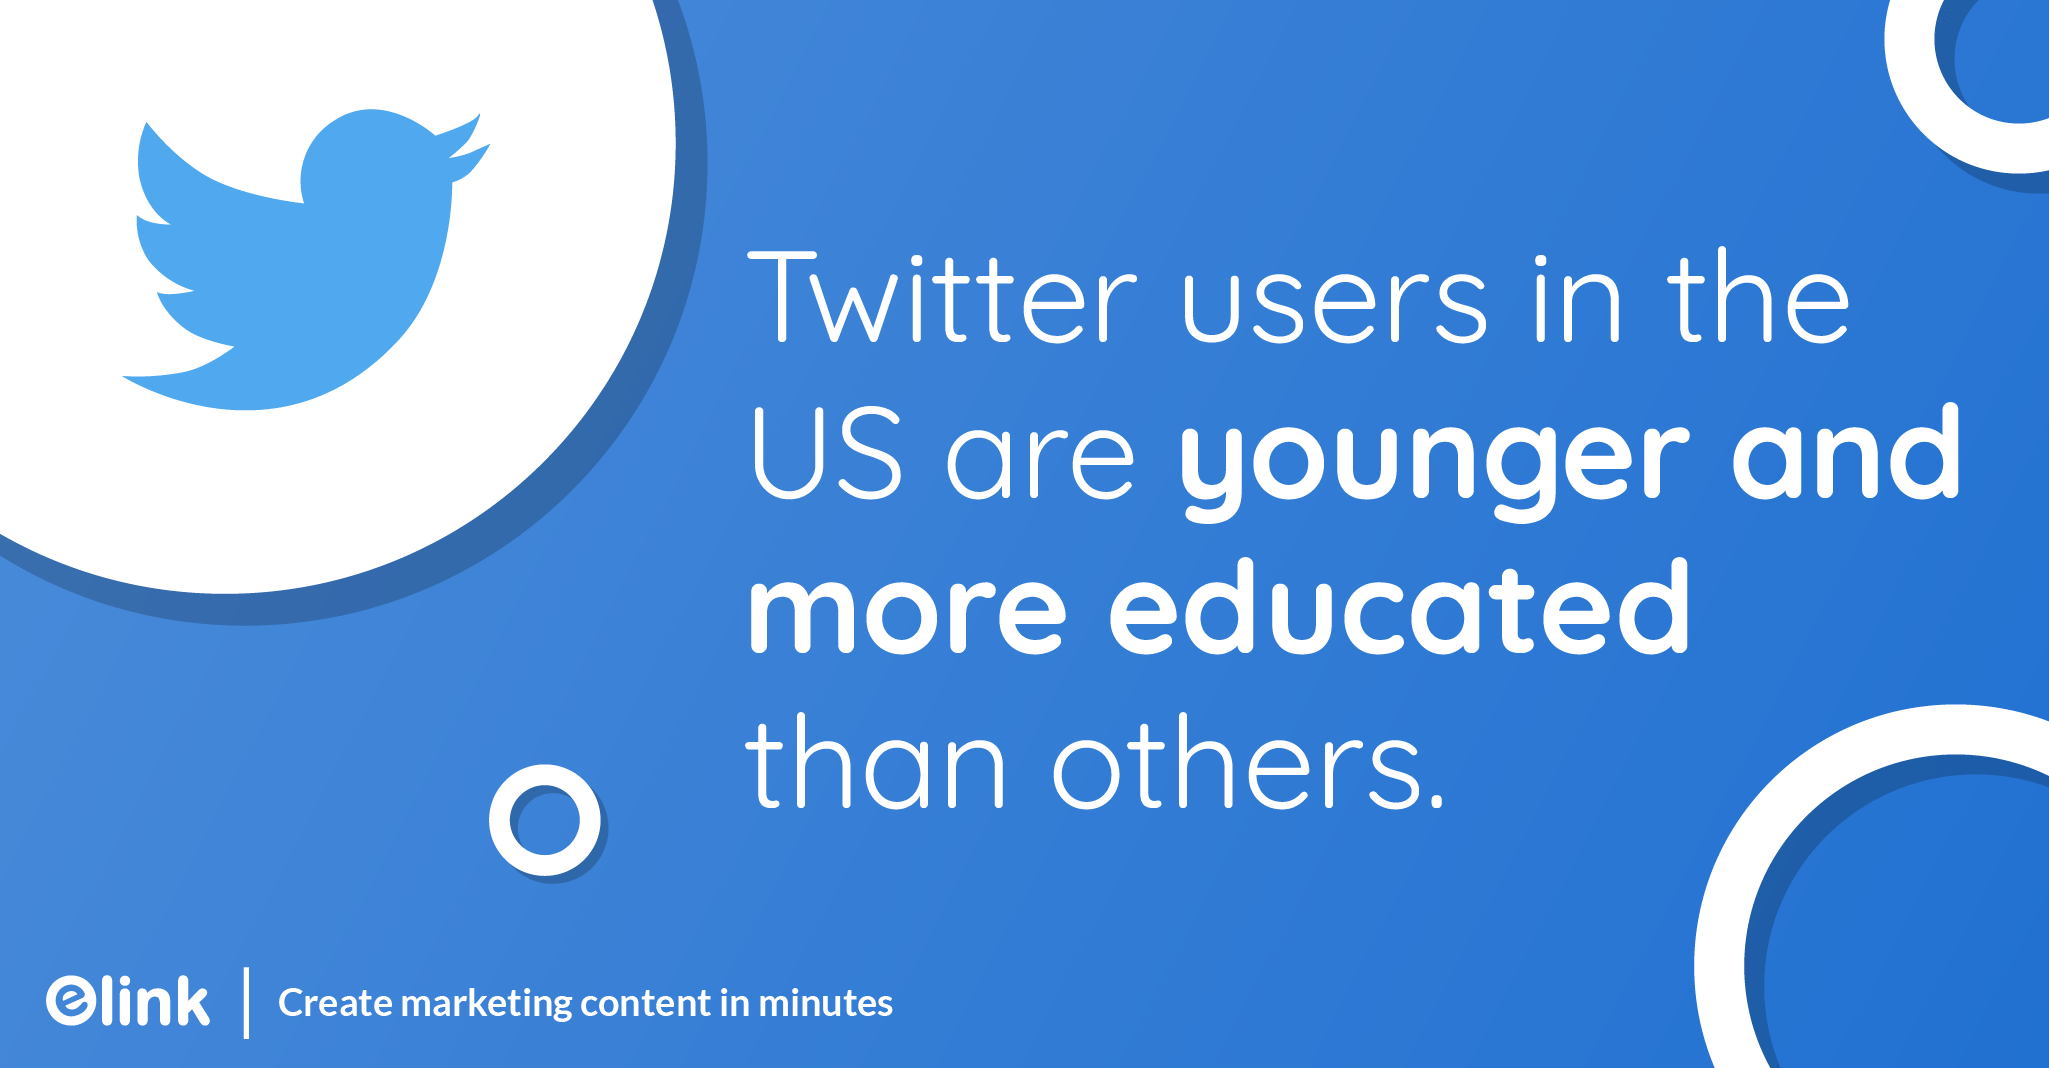 Twitter users in the US are younger and more educated than the rest of the world.